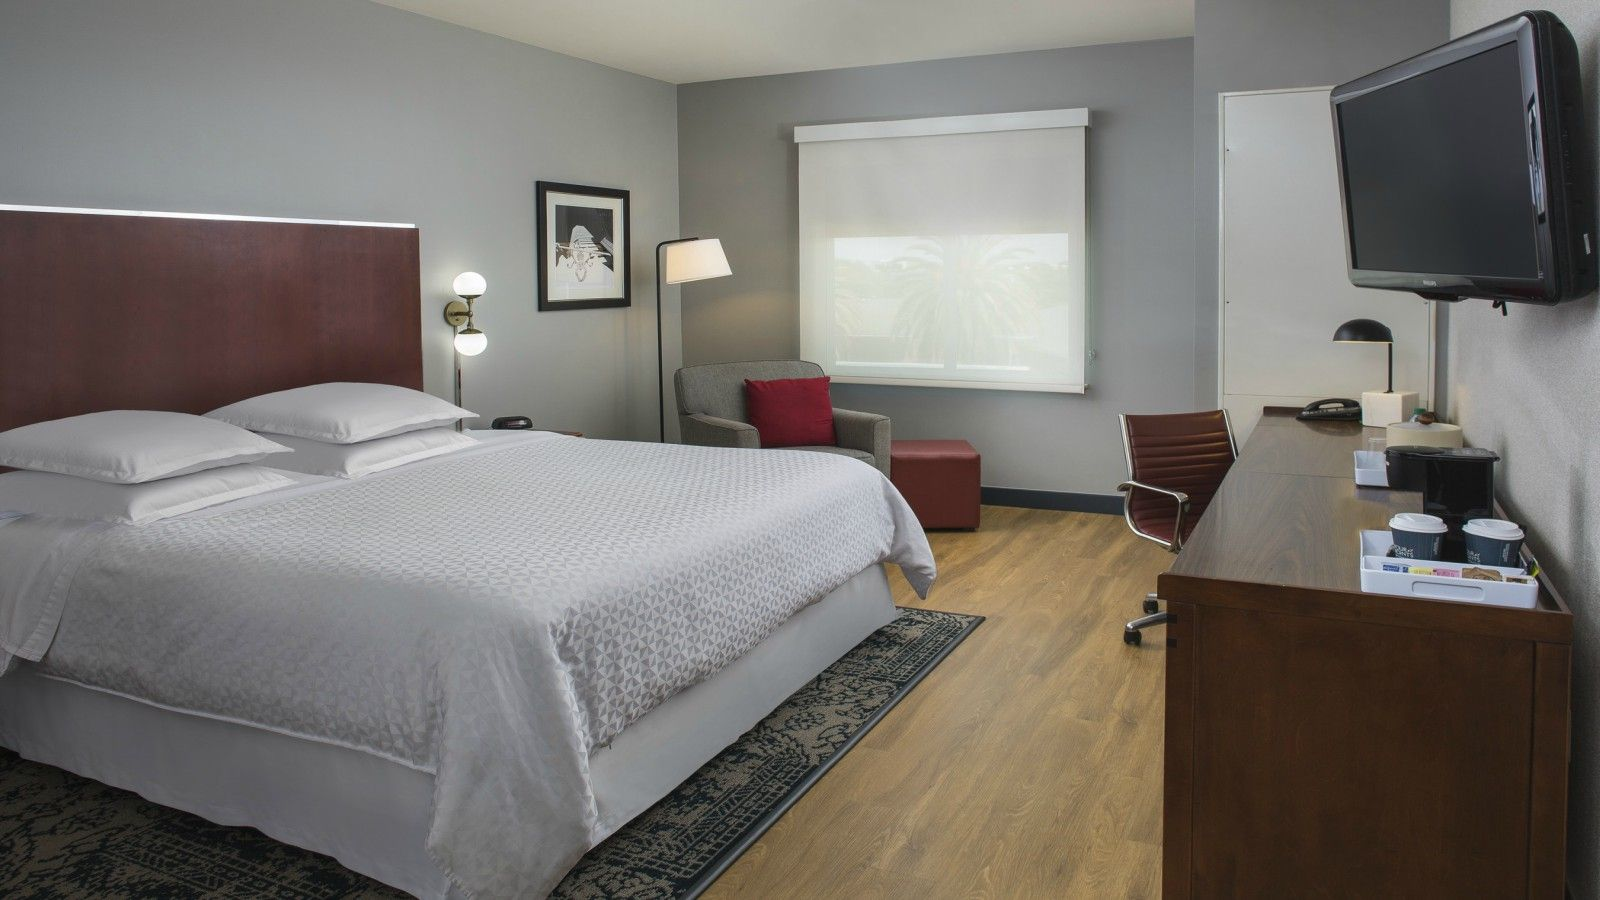 Houston Accommodations - Accessible Room